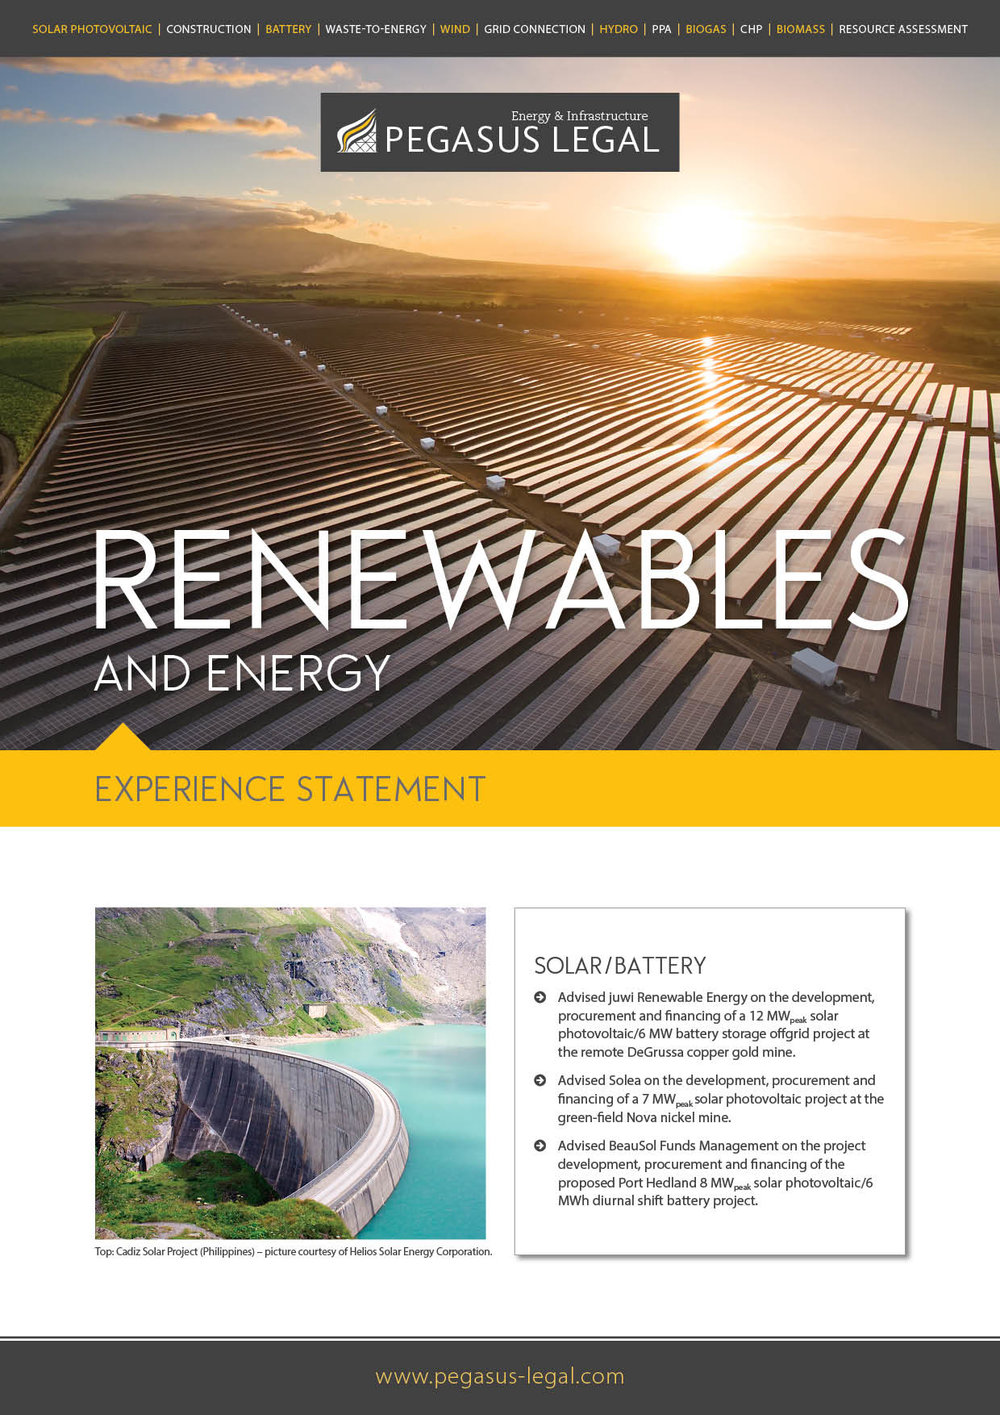 Renewables & Energy_for website.jpg